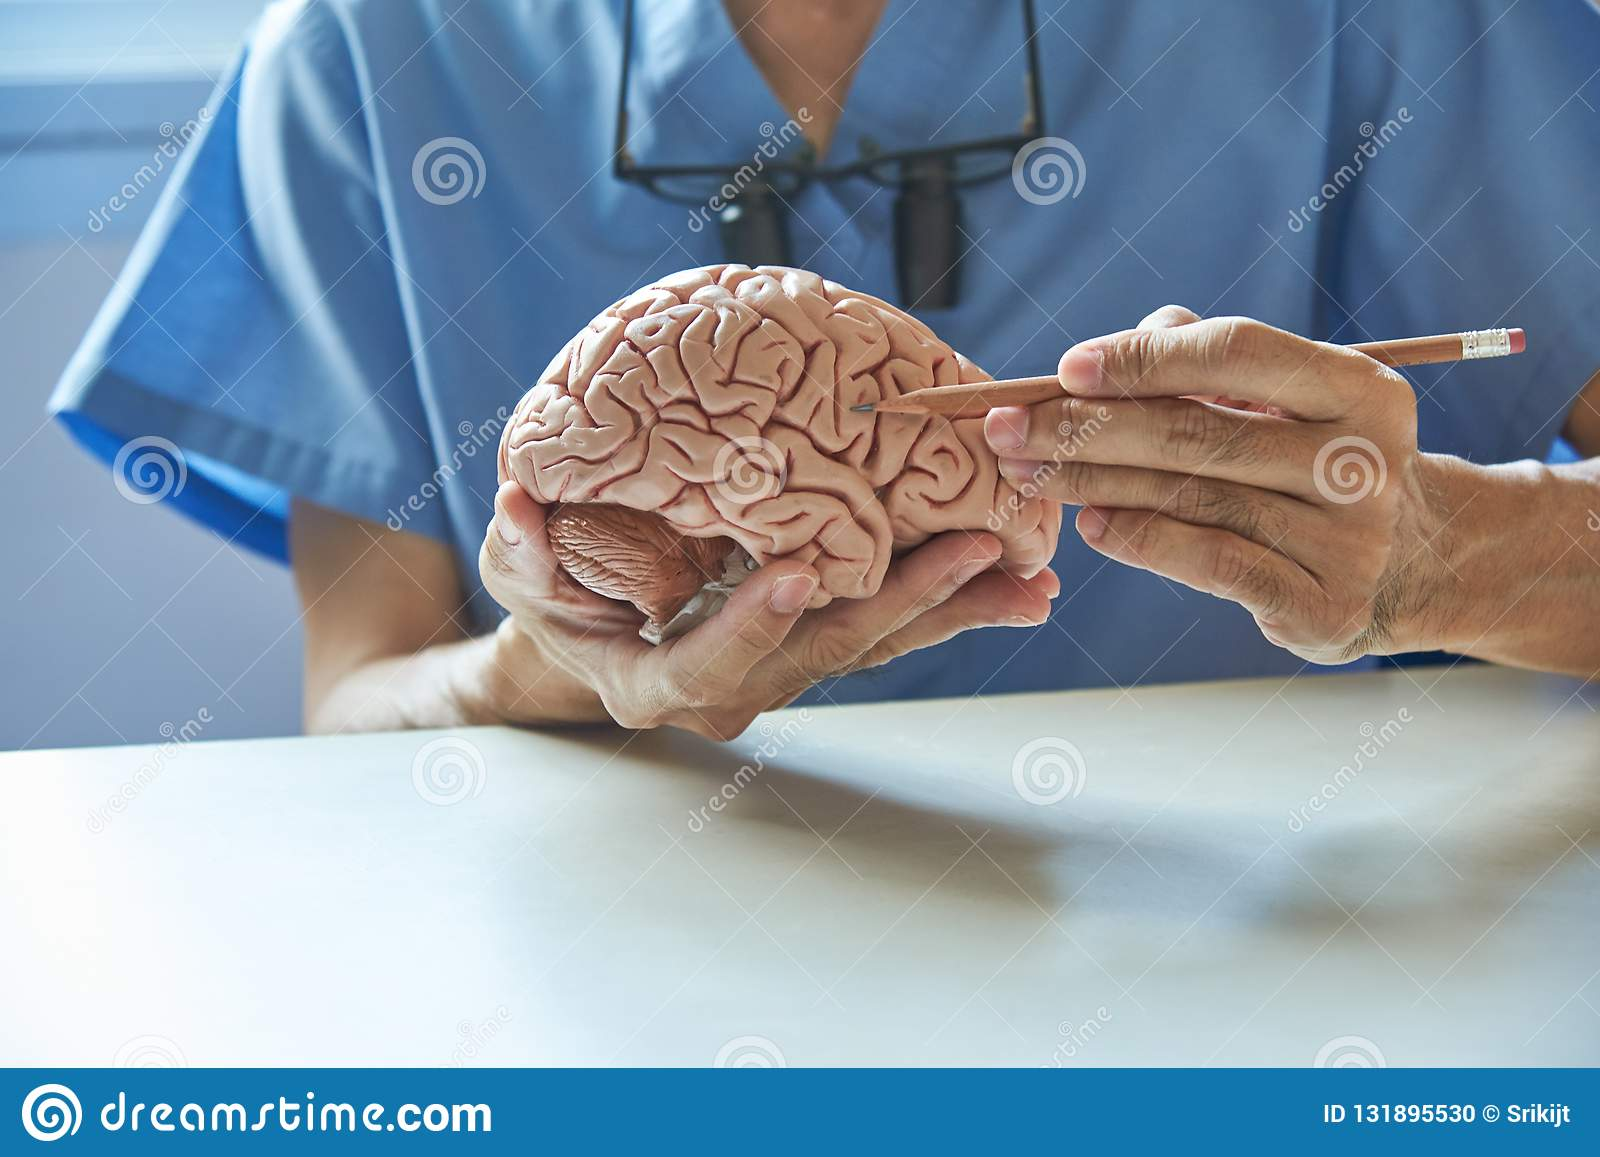 Doctor Using Pencil To Demonstrate Anatomy Of Artificial Human B